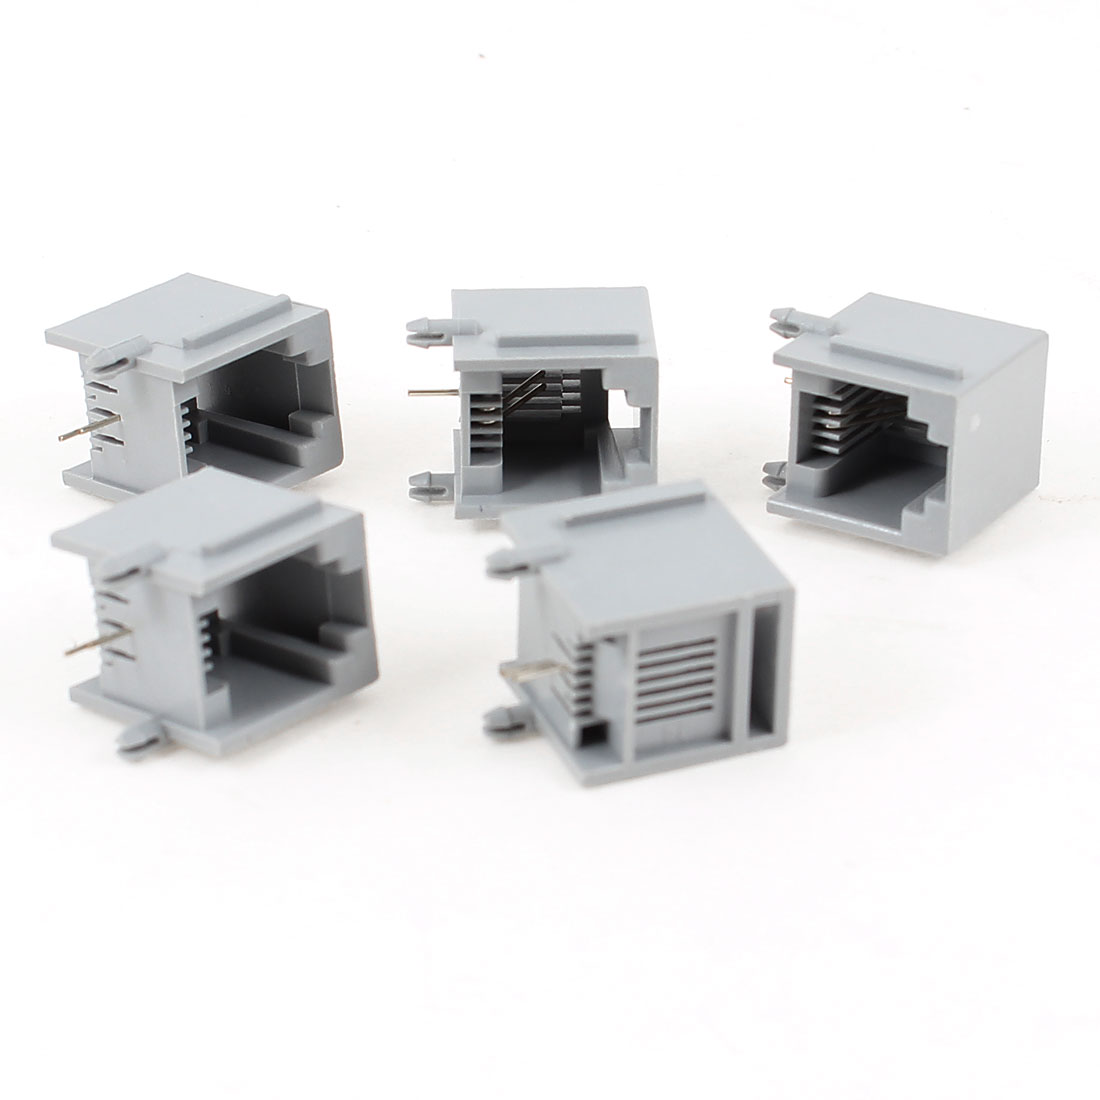 5 Pcs Unshielded RJ11 6P2C Network Modular PCB Jacks Single Port Gray